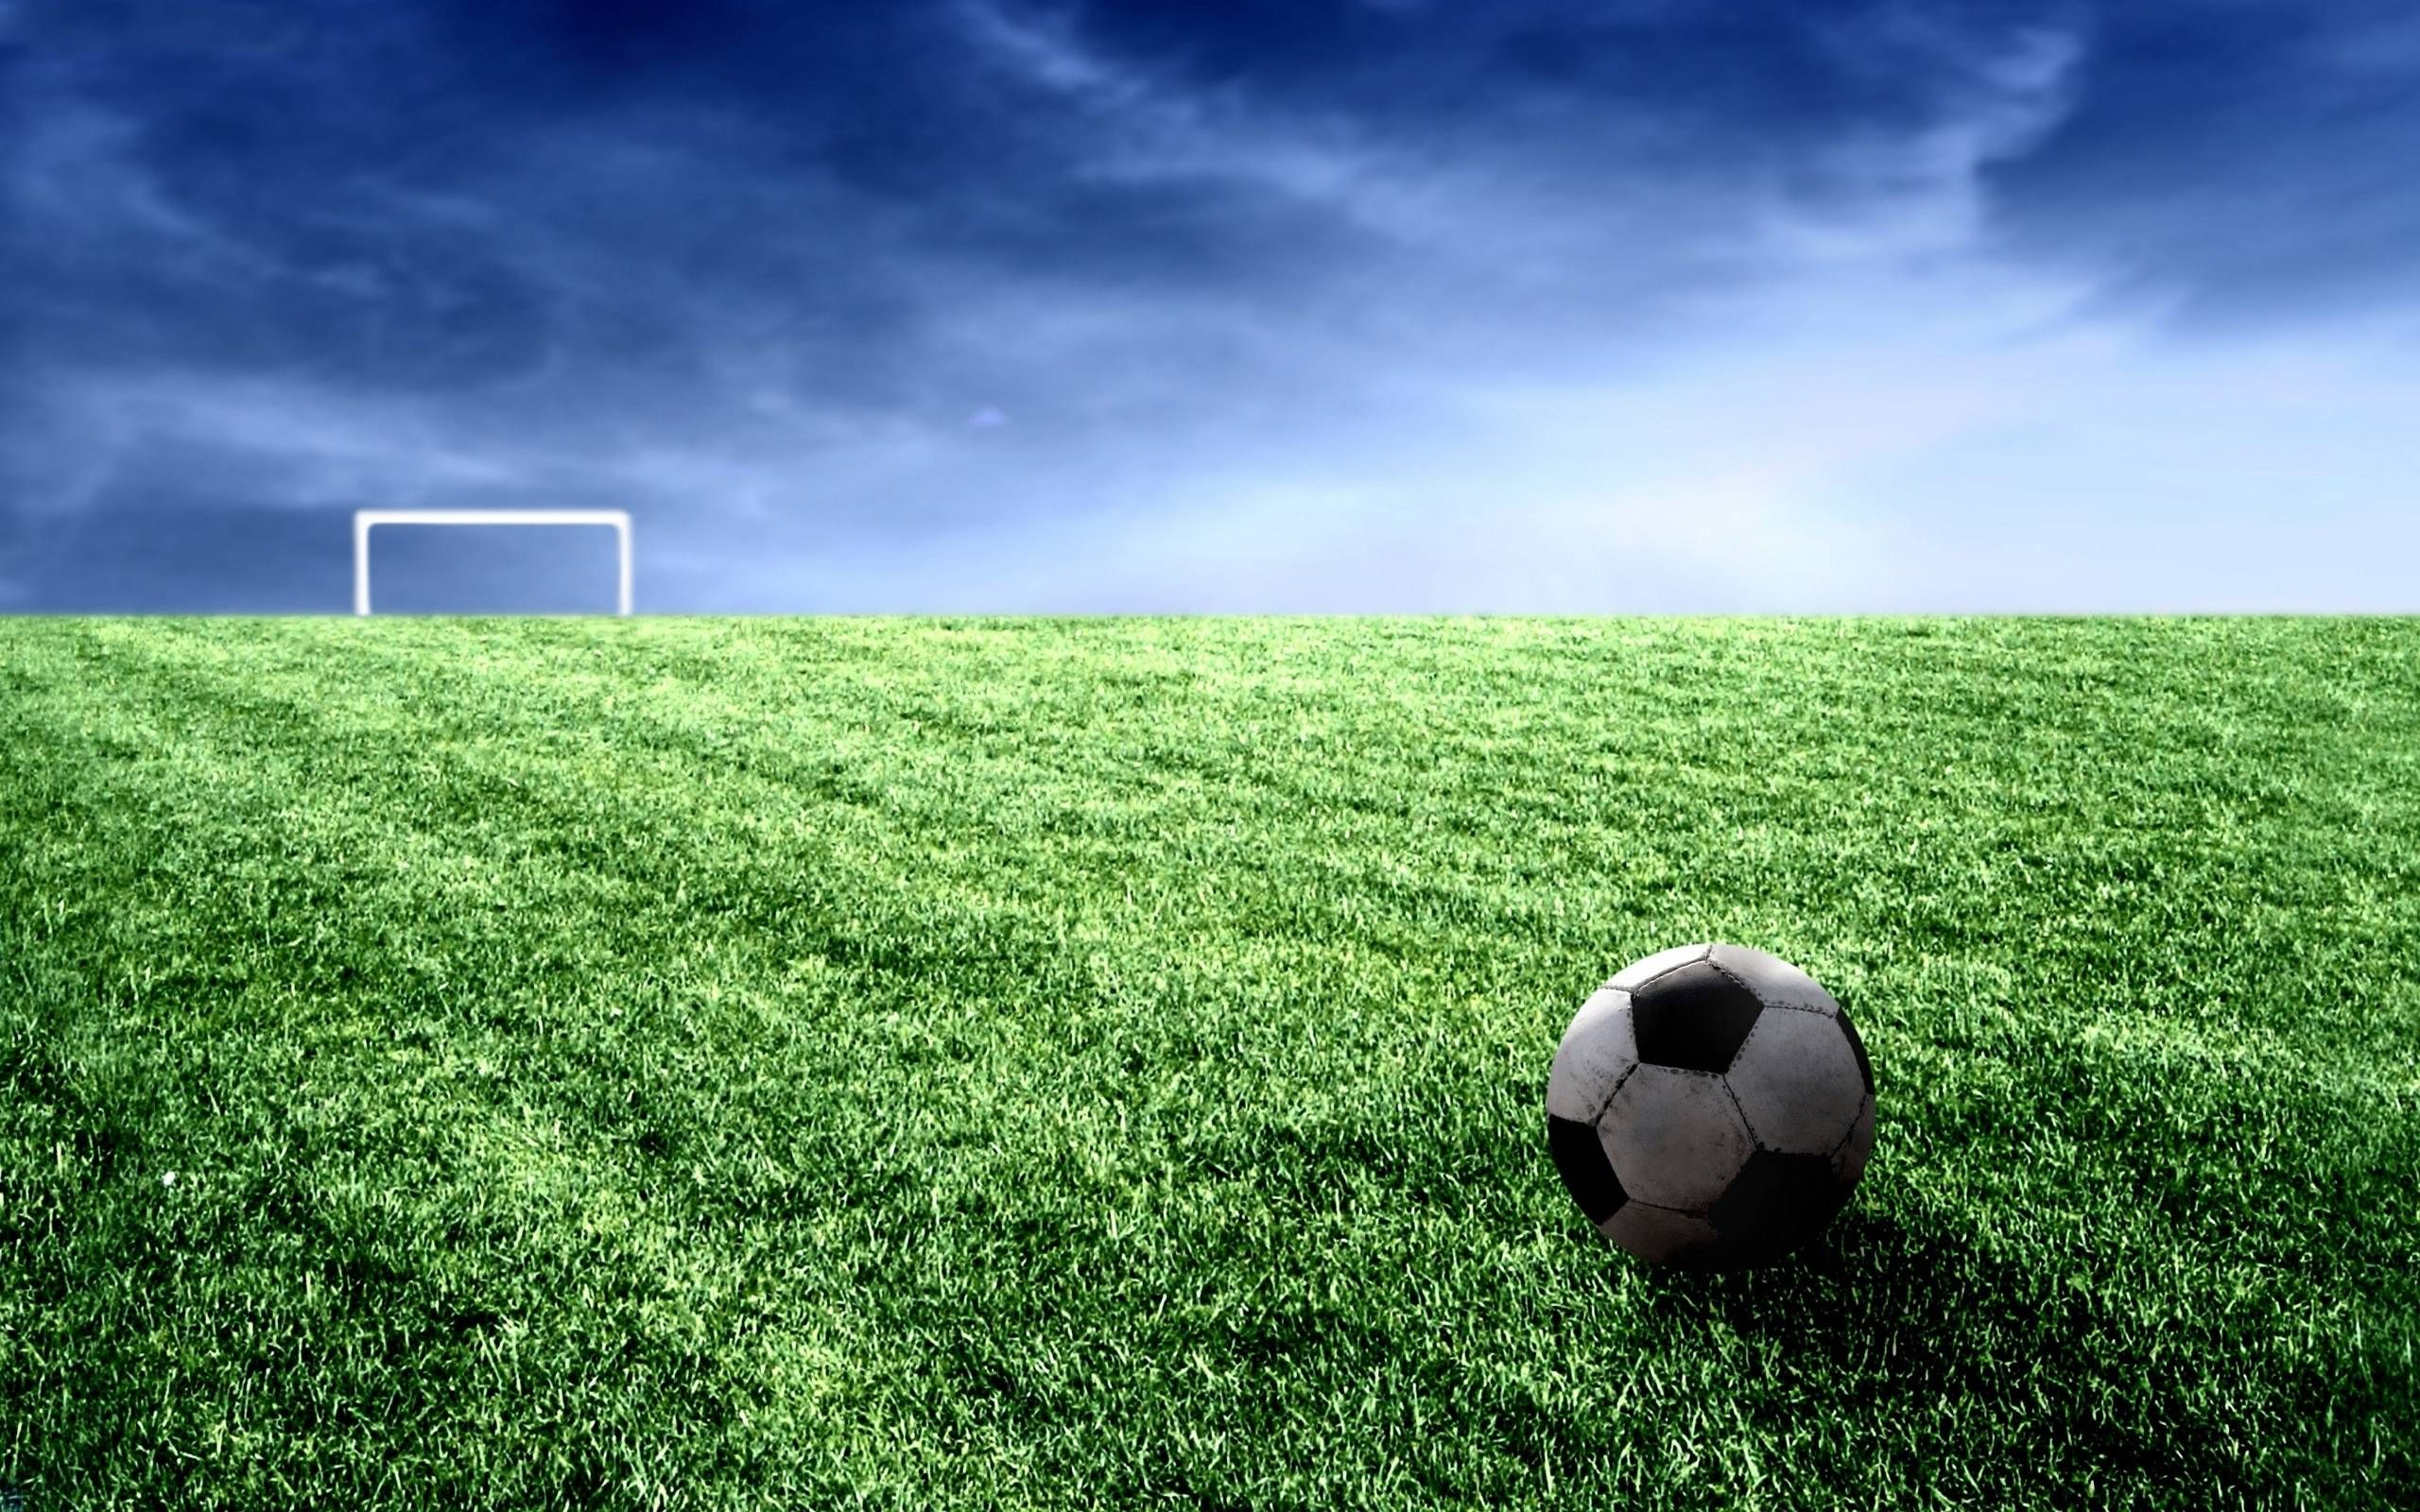 Soccer Field Wallpaper Hd N2g Football Wallpaper Stadium Wallpaper Soccer